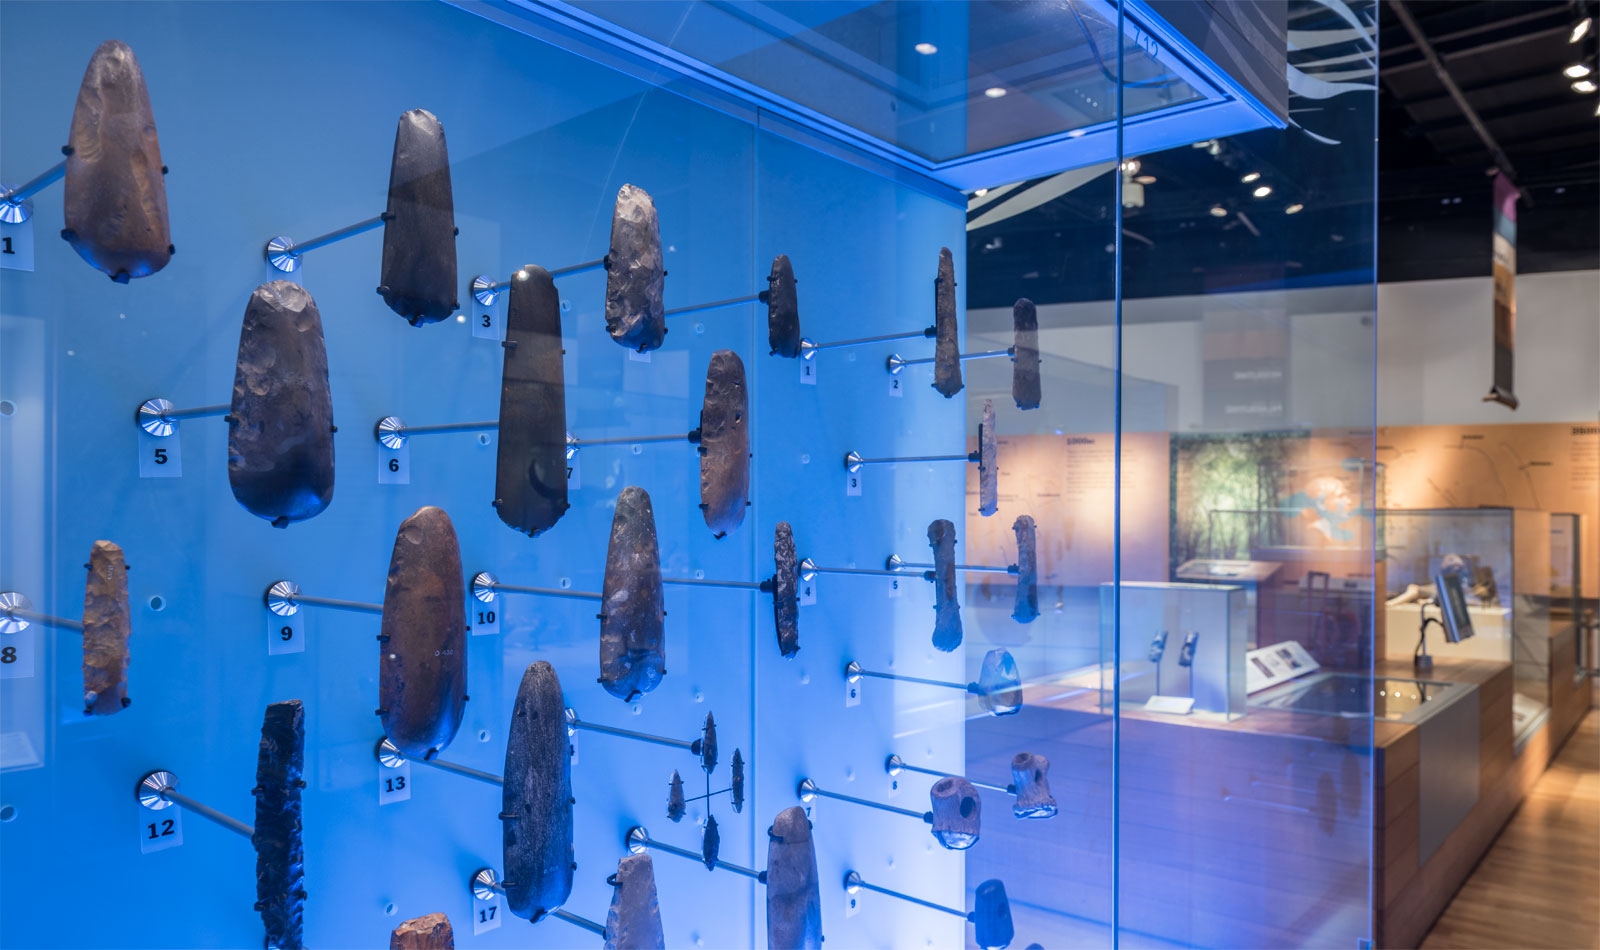 The River Thames is one of the most important archaeological sites in Britain. For thousands of years people placed precious objects, including the bodies of the dead, into its dark waters, perhaps because they believed it was a gateway to another world. The London before London river wall showcases many of the amazing treasures recovered from the Thames.